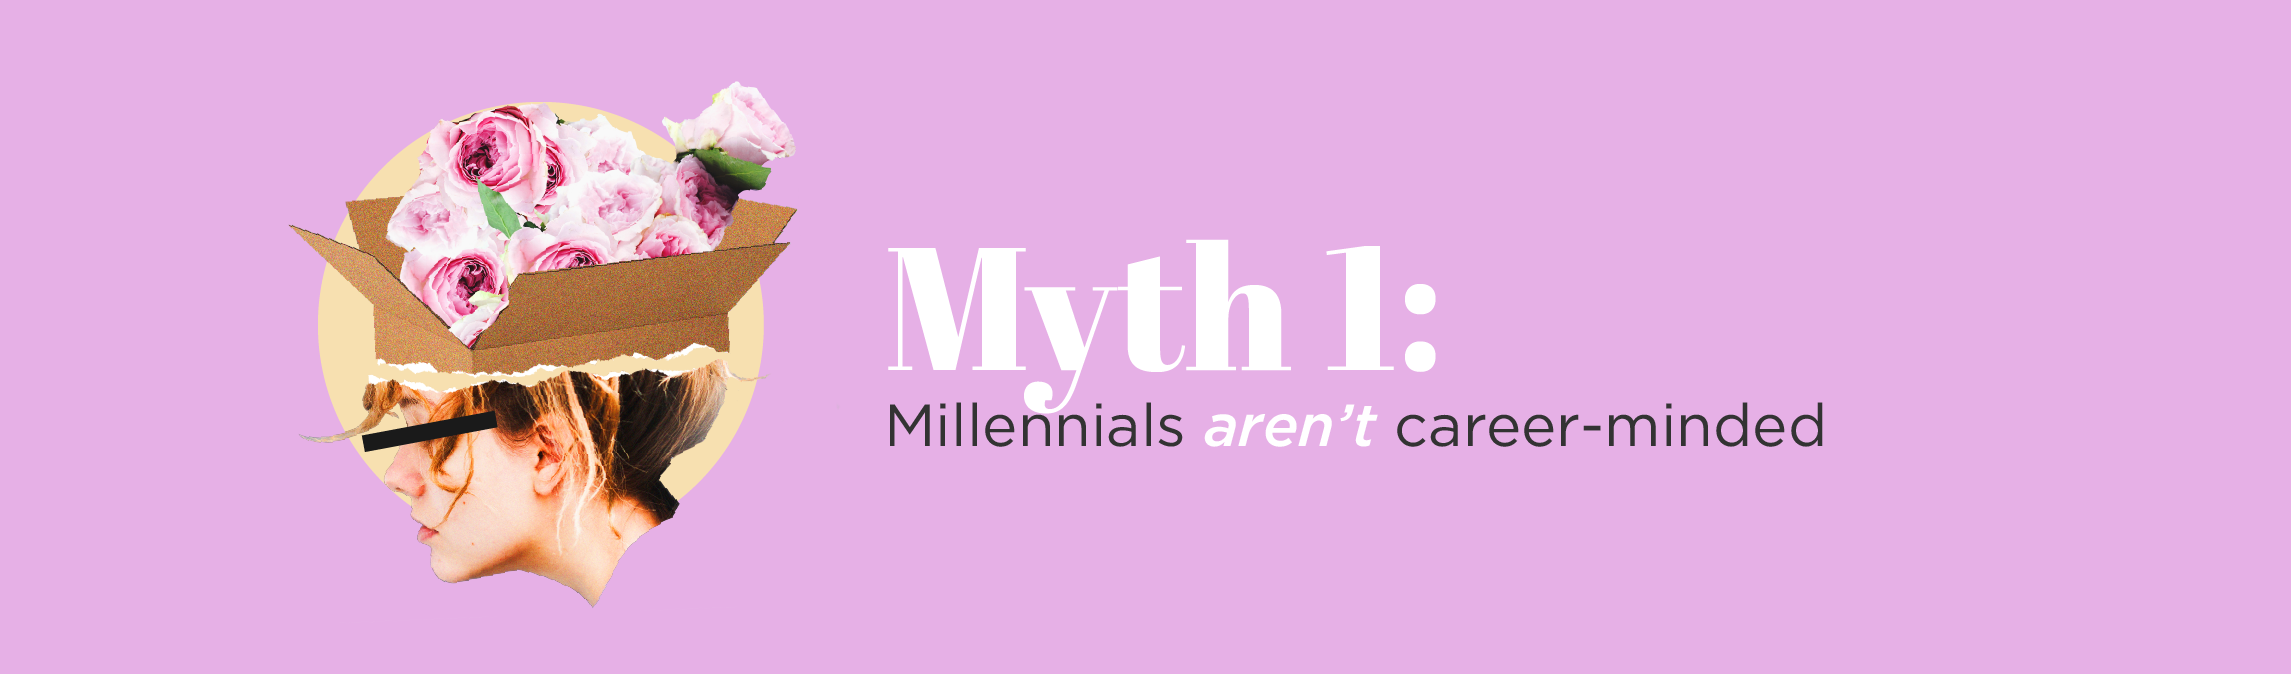 myth 1: millennials aren't career-minded